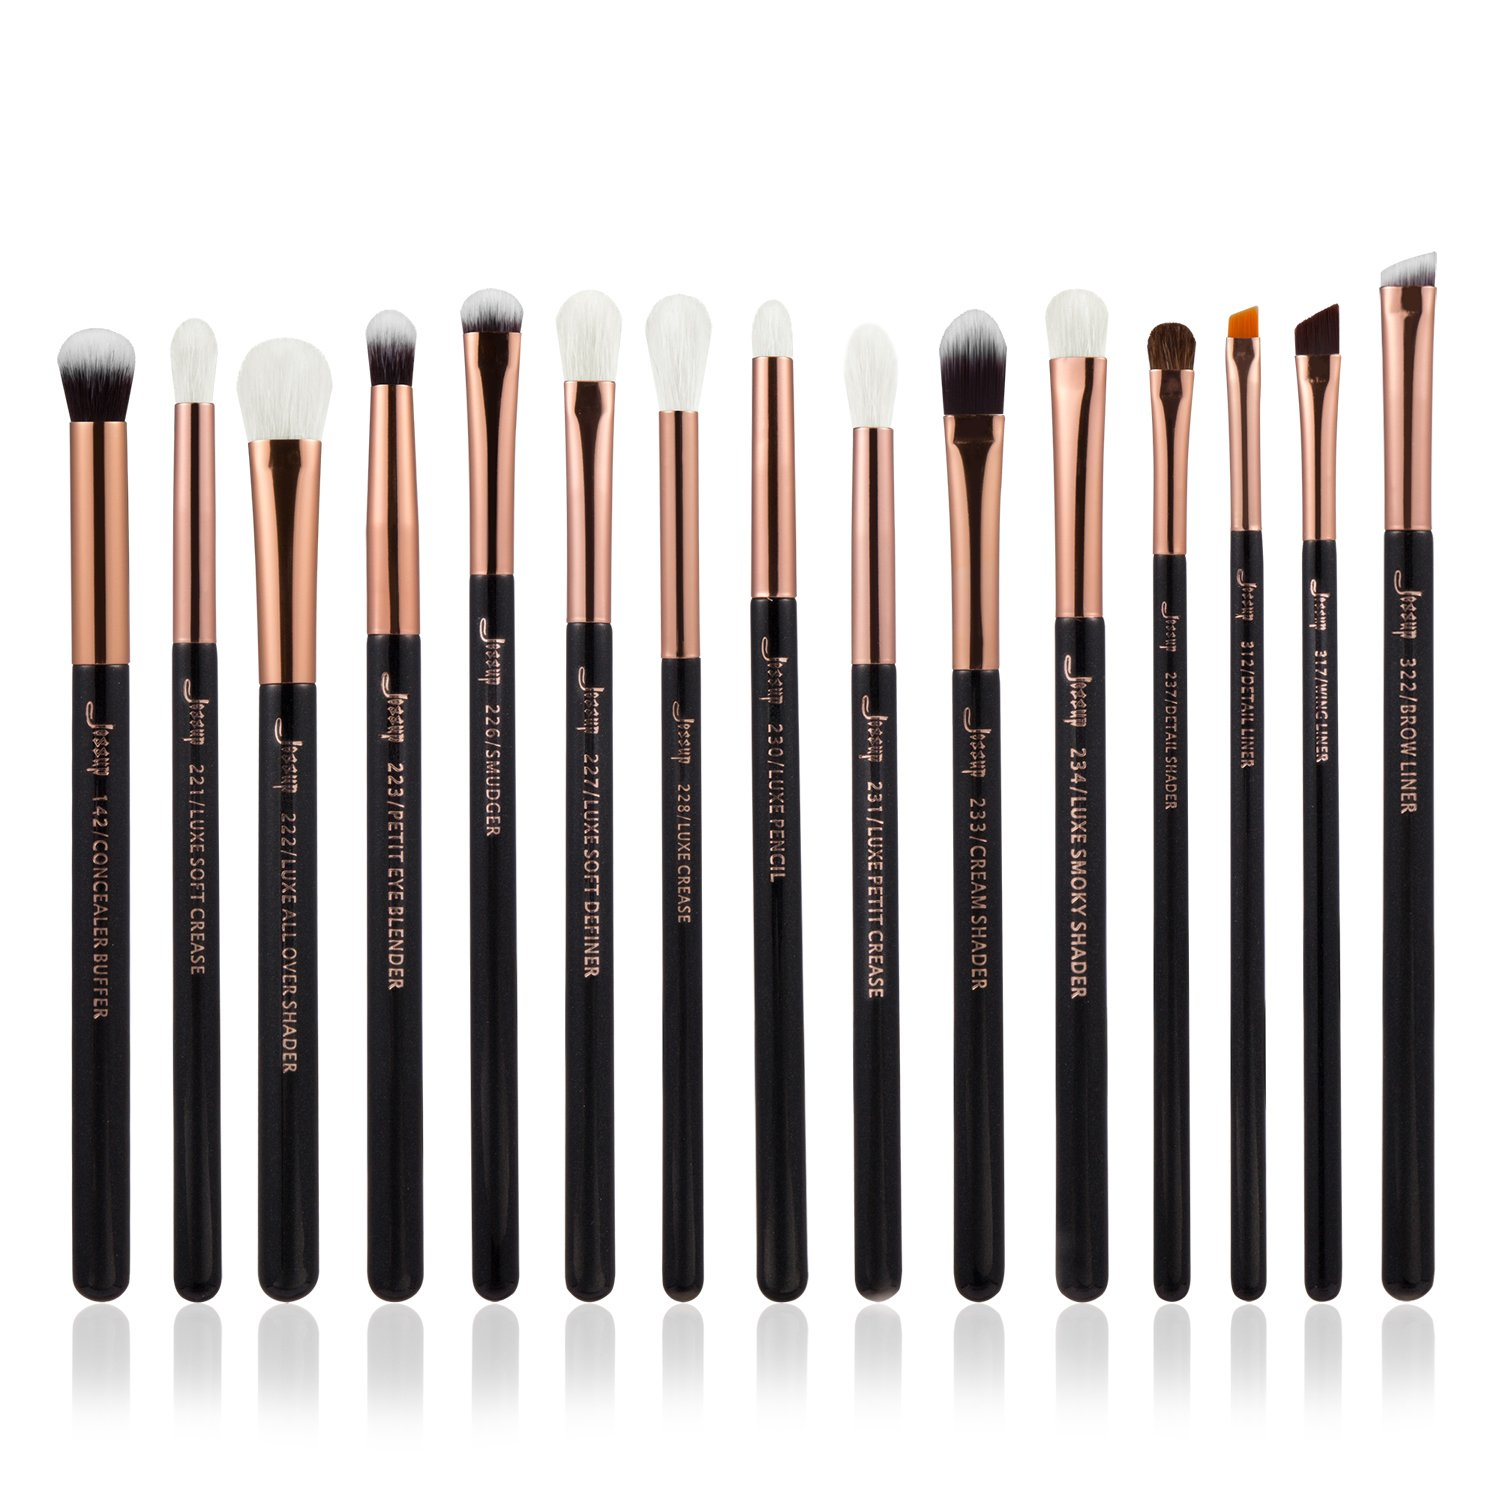 Jessup Professional Makeup Eyebrush 15 pcs Lipstick Blending Liner Eyeshadow Natural- Synthetic Hair Black/Rose Gold T157 MANKALUN